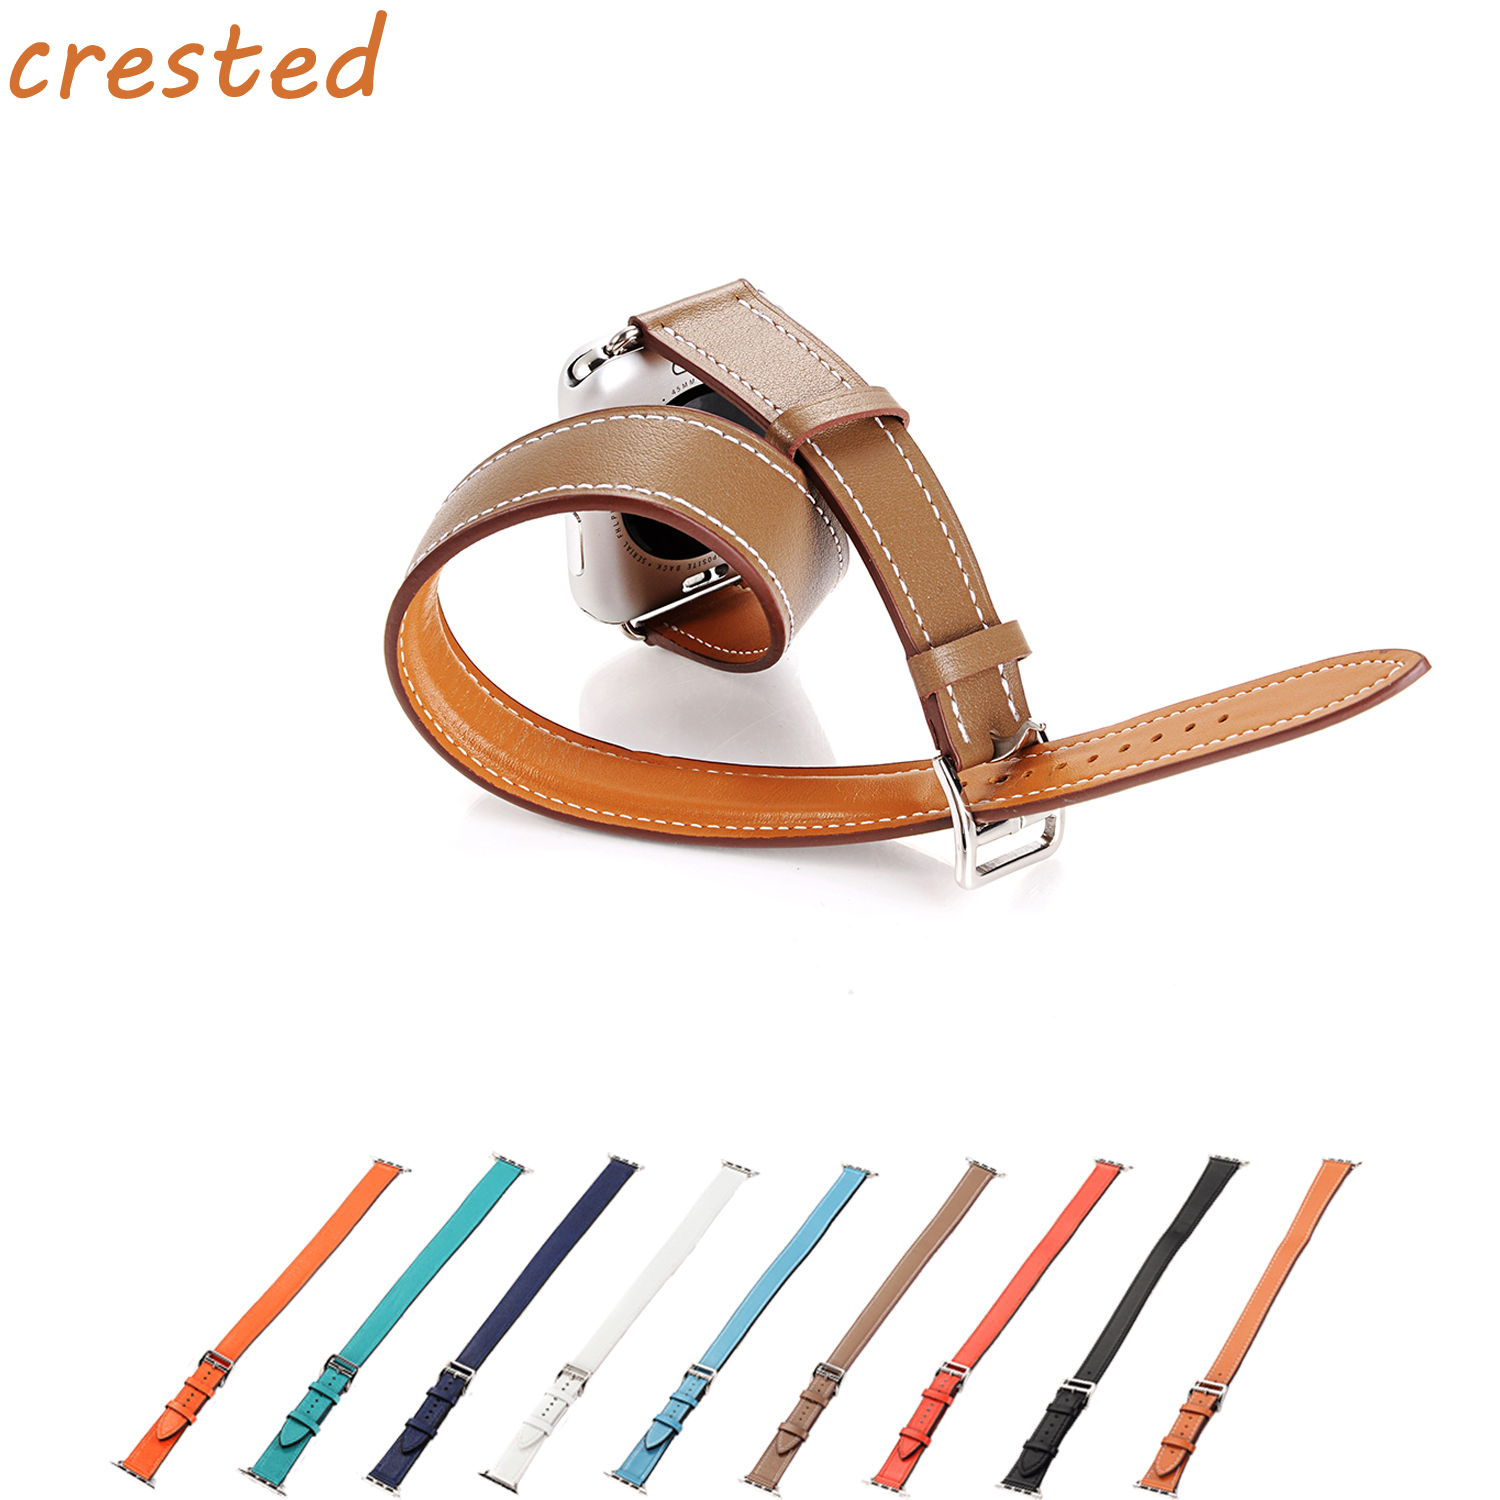 Luxury Double tour bracelet for apple watch band strap 42mm/38mm iWatch 3/2/1 Genuine leather watchband wrist belt+metal buckle 6 colors luxury genuine leather watchband for apple watch sport iwatch 38mm 42mm watch wrist strap bracelect replacement